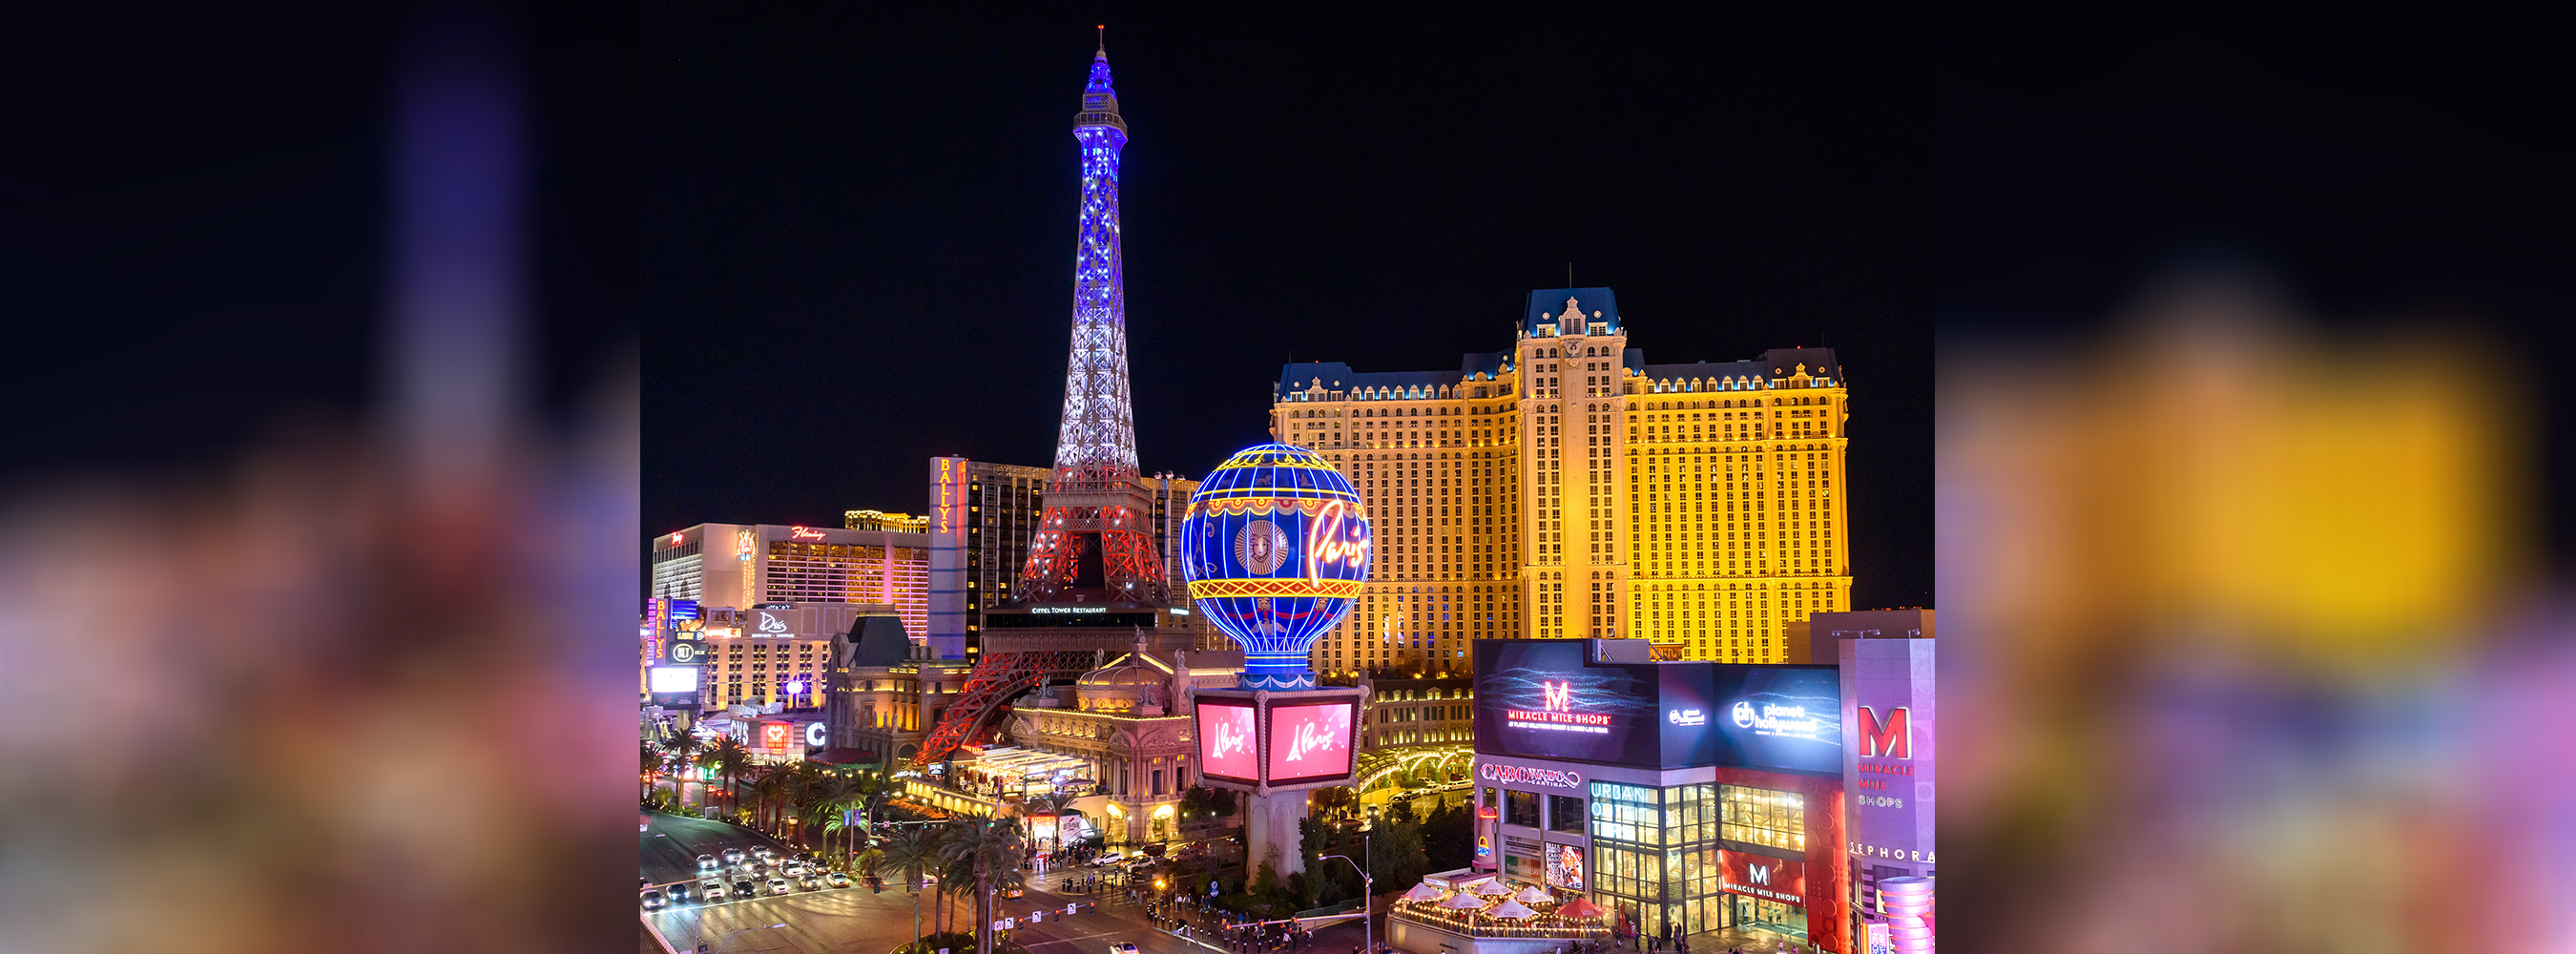 paris las vegas debuts new 1 7 million eiffel tower light. Black Bedroom Furniture Sets. Home Design Ideas